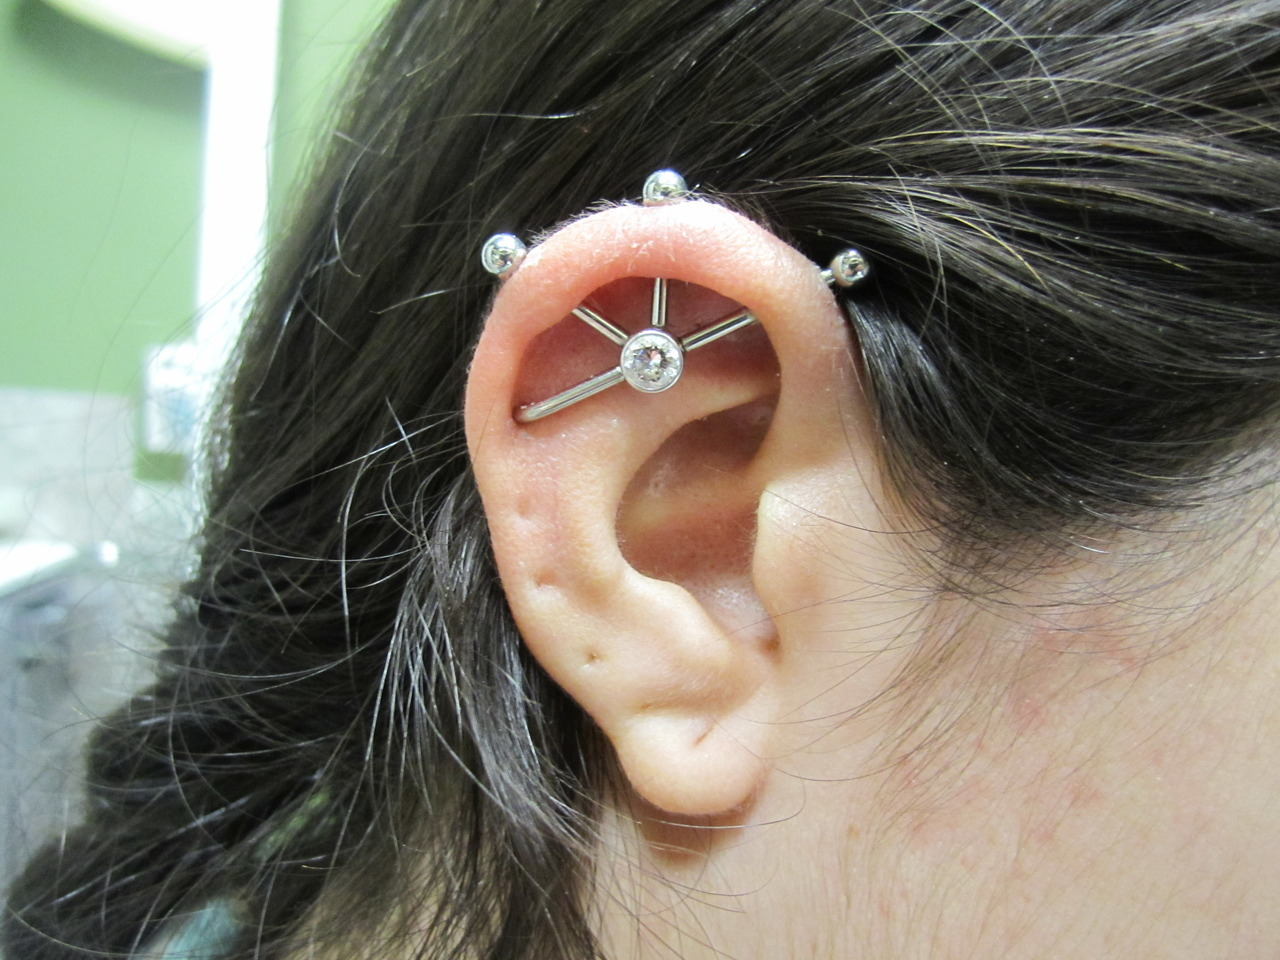 Custom 14k white gold quad threaded center. All healed and done with this piece initially.